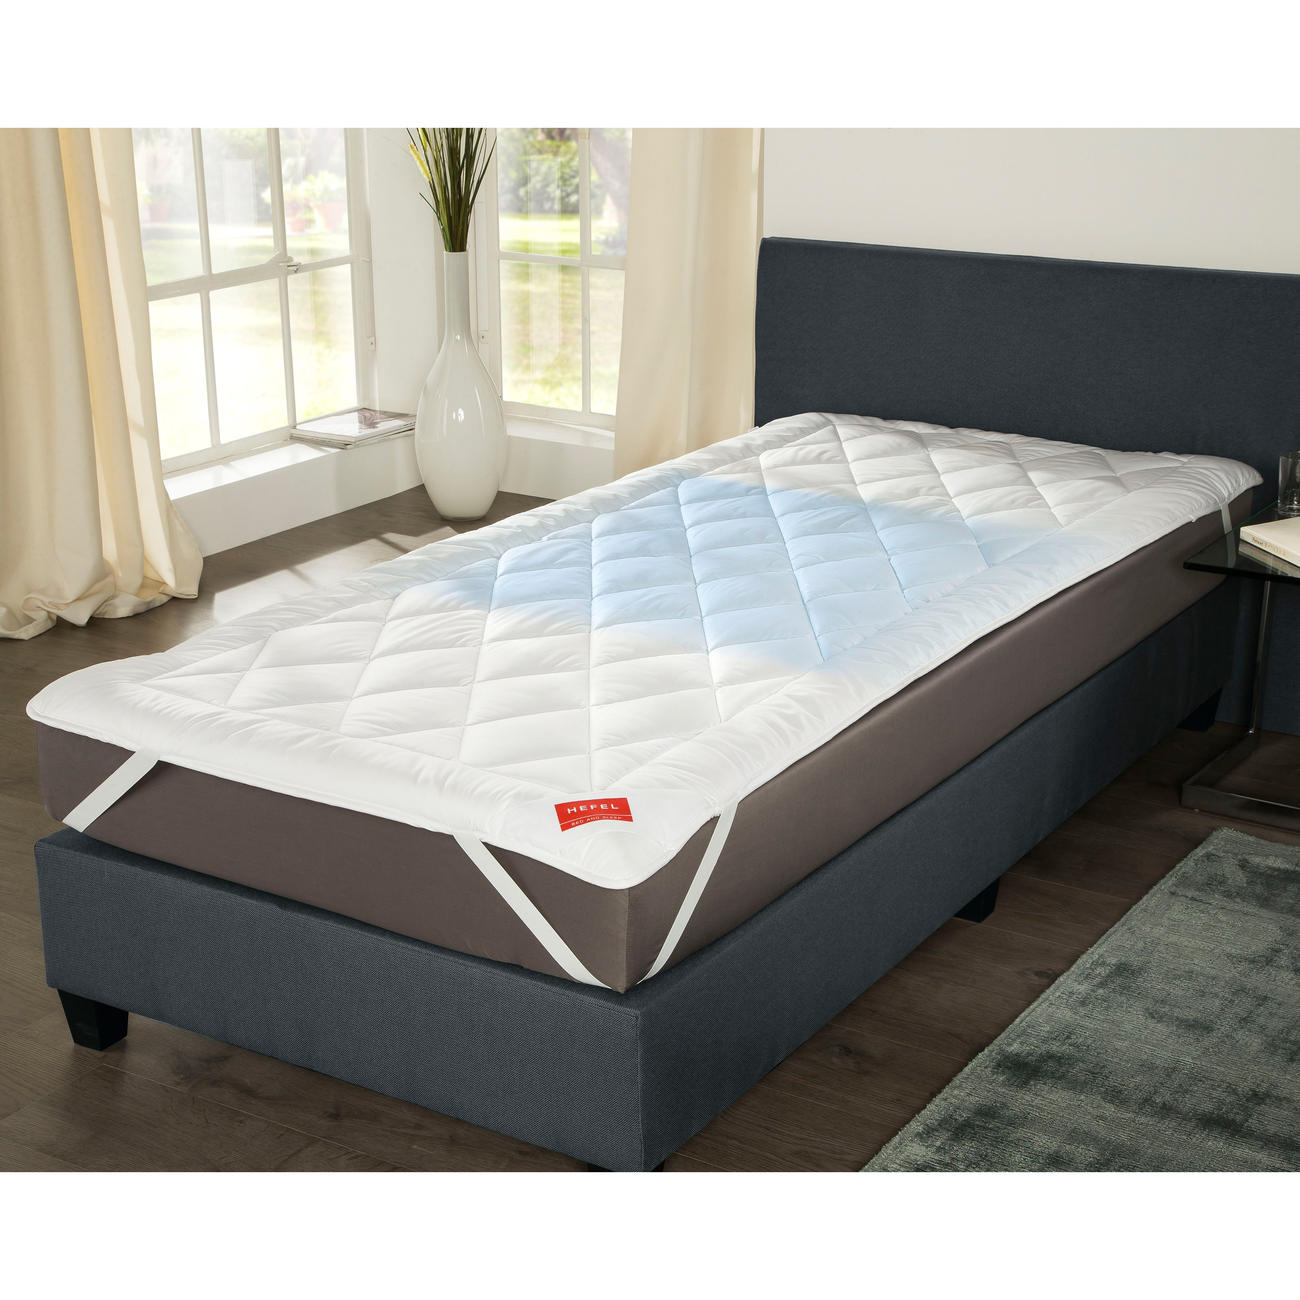 snow deep overfilled cooling fillking pad topper fitted mattress alternative down cover with pocket white products